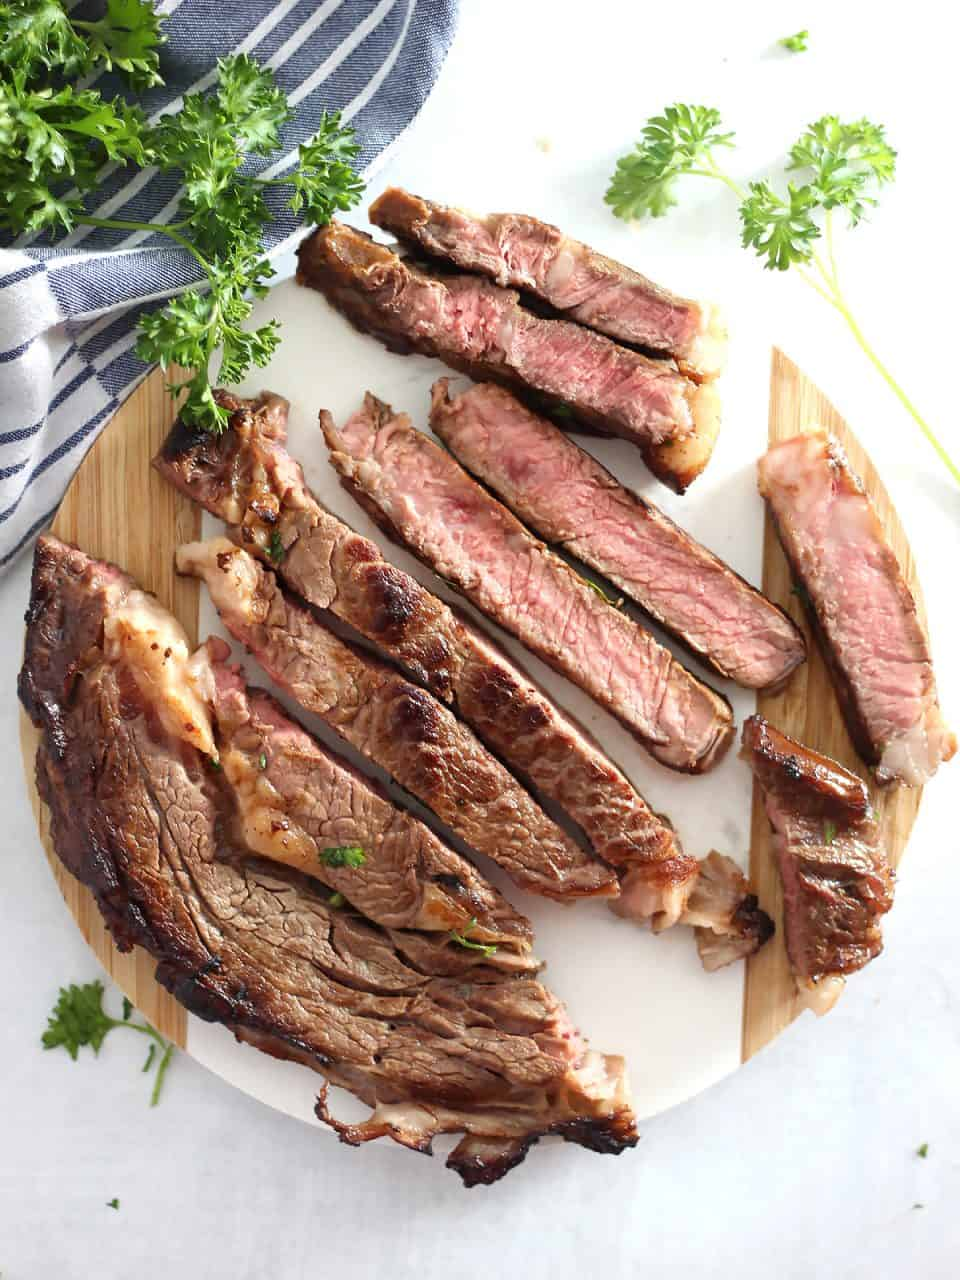 The beer marinated steak sliced into strips on a wooden chopping board.